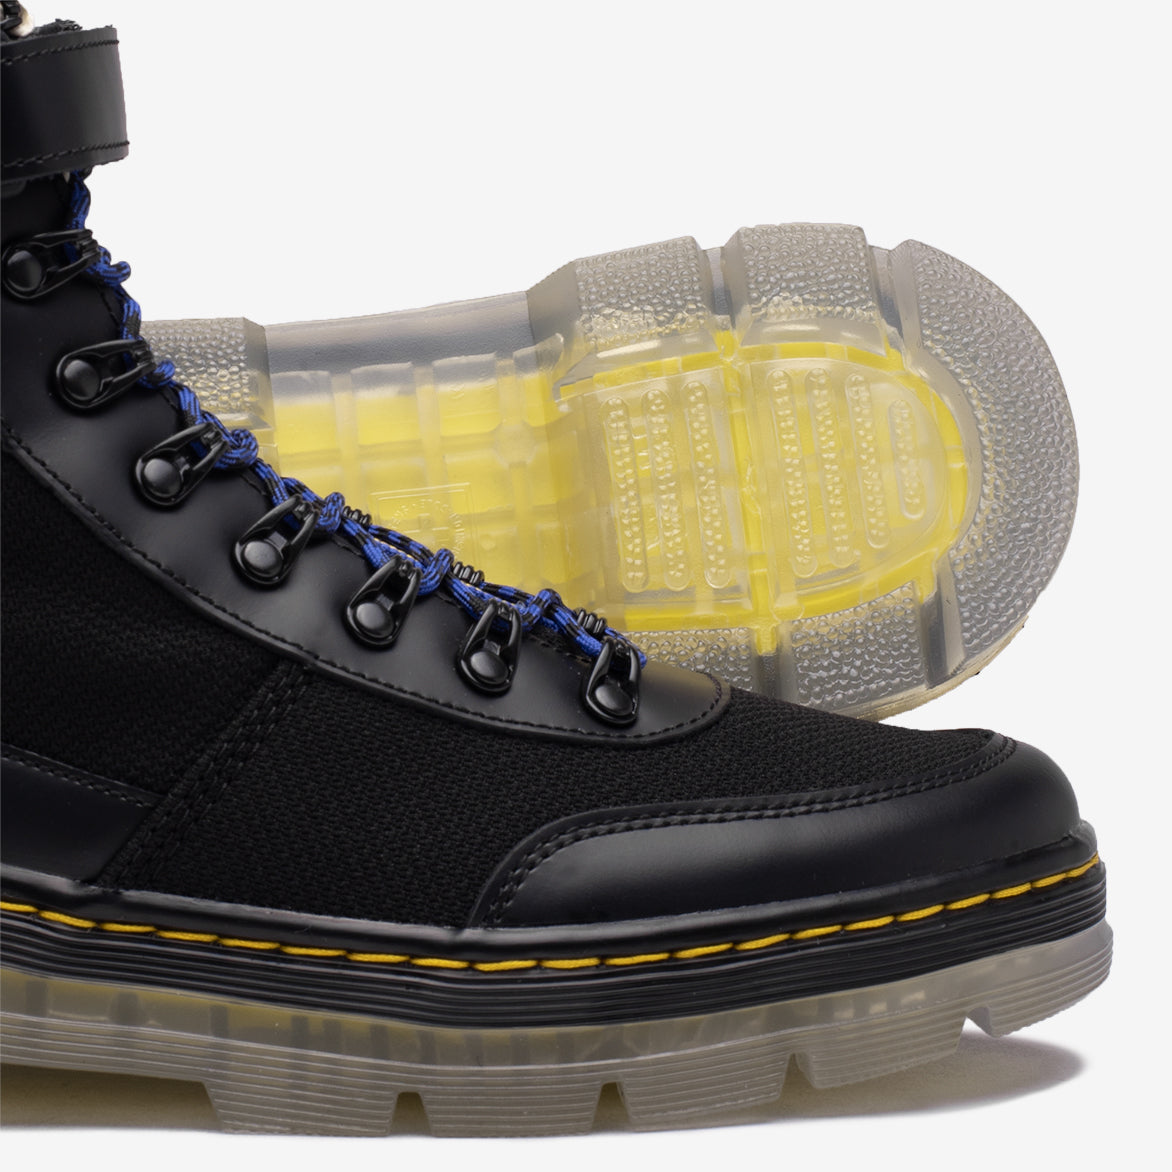 ATMOS X DR. MARTENS COMBS TECH - BLACK